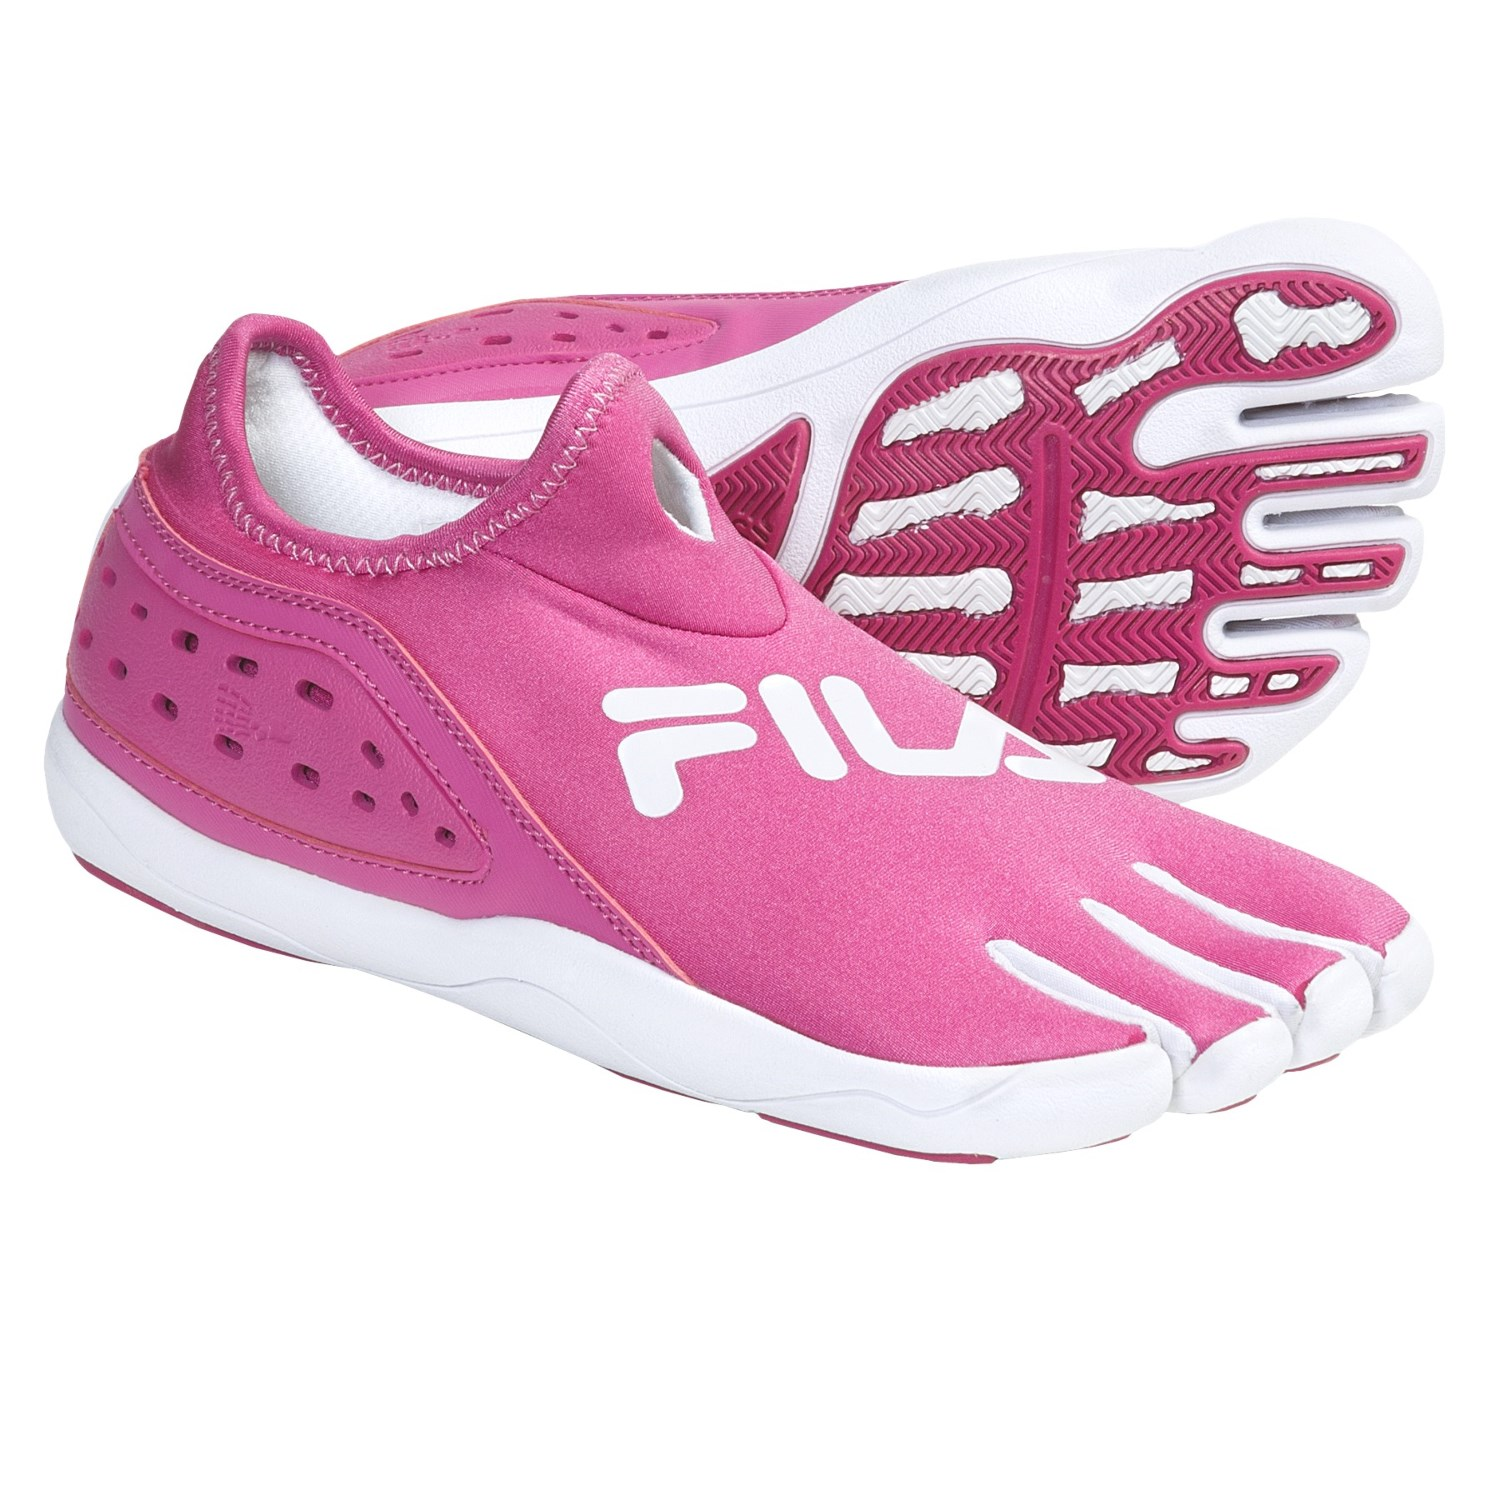 Zulily: Save up to 75% Off Fila Shoes (as low as $15.99